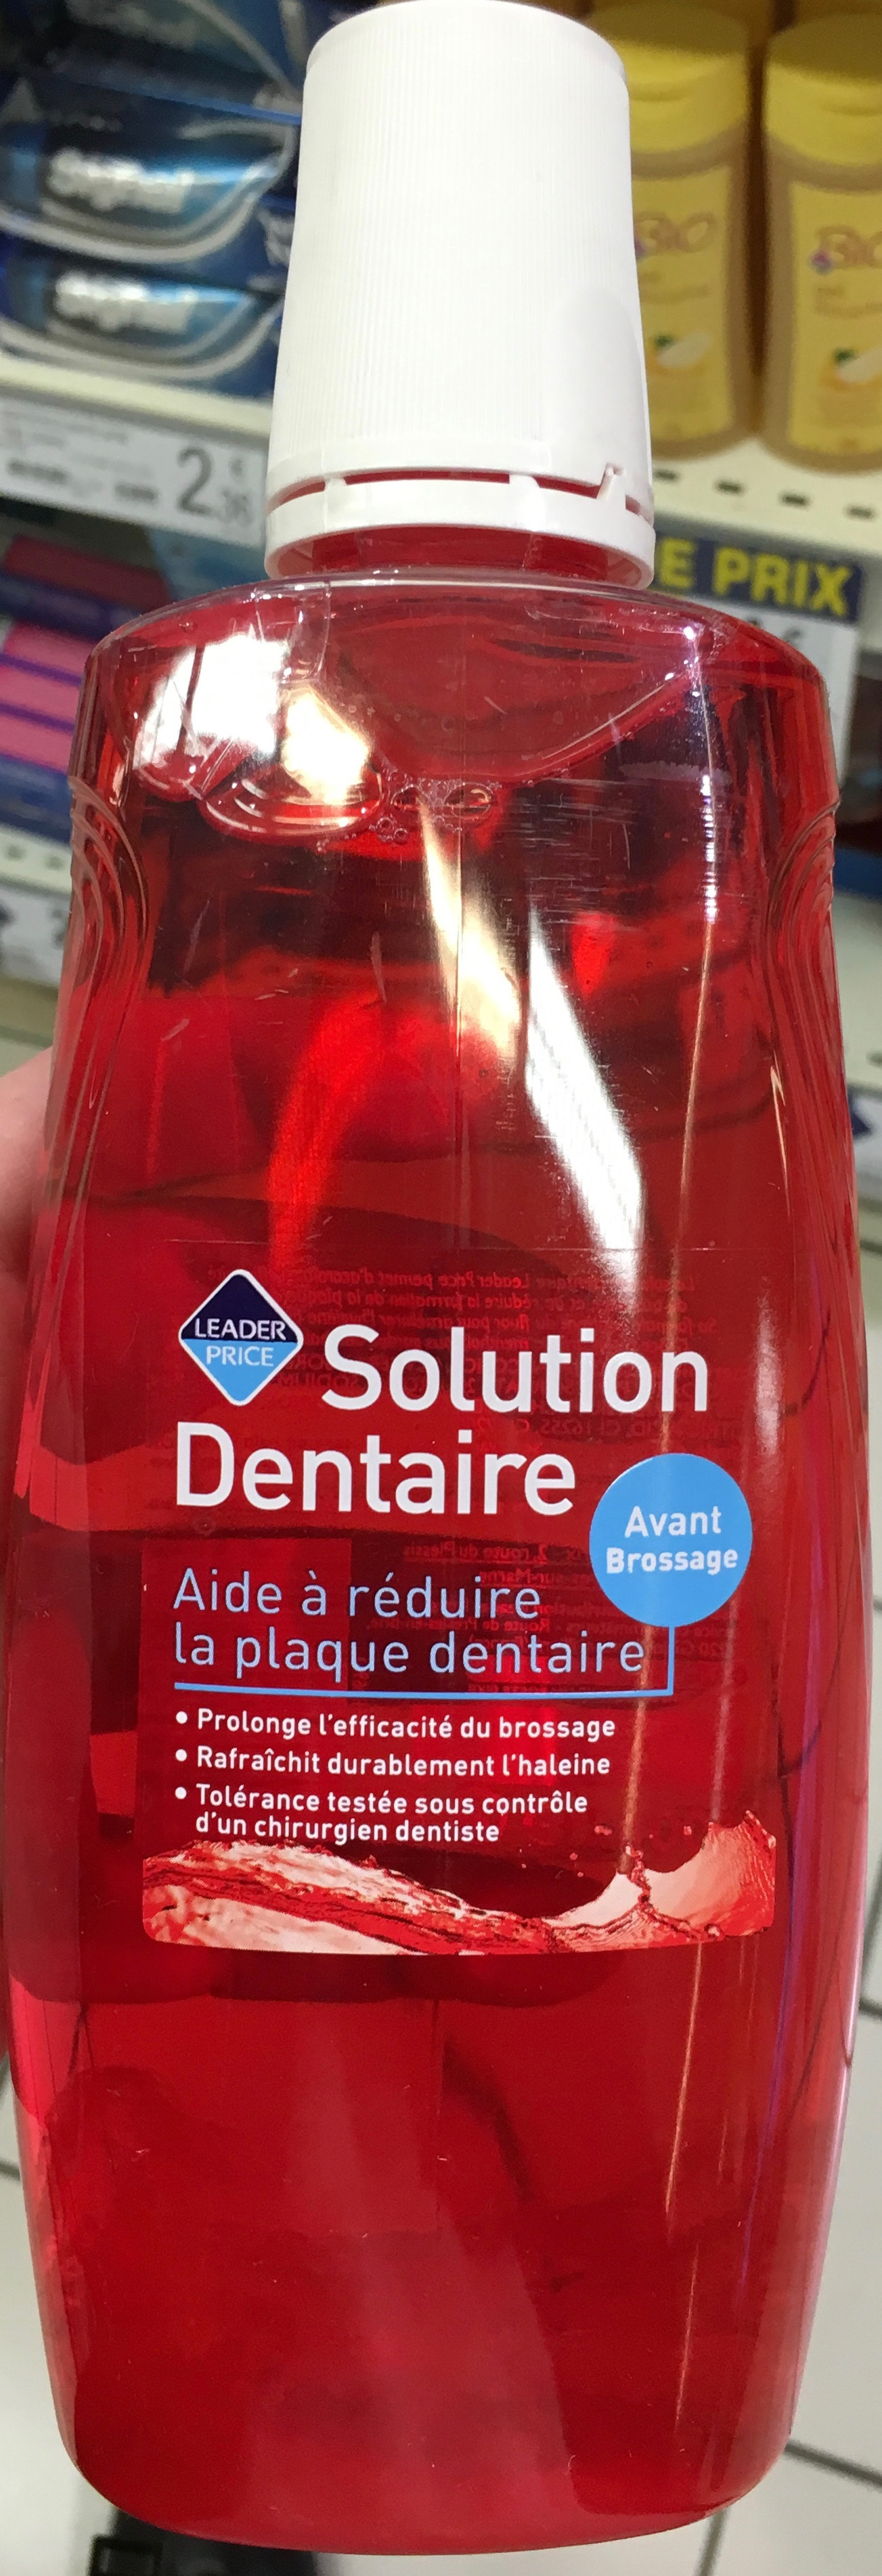 Solution Dentaire - Product